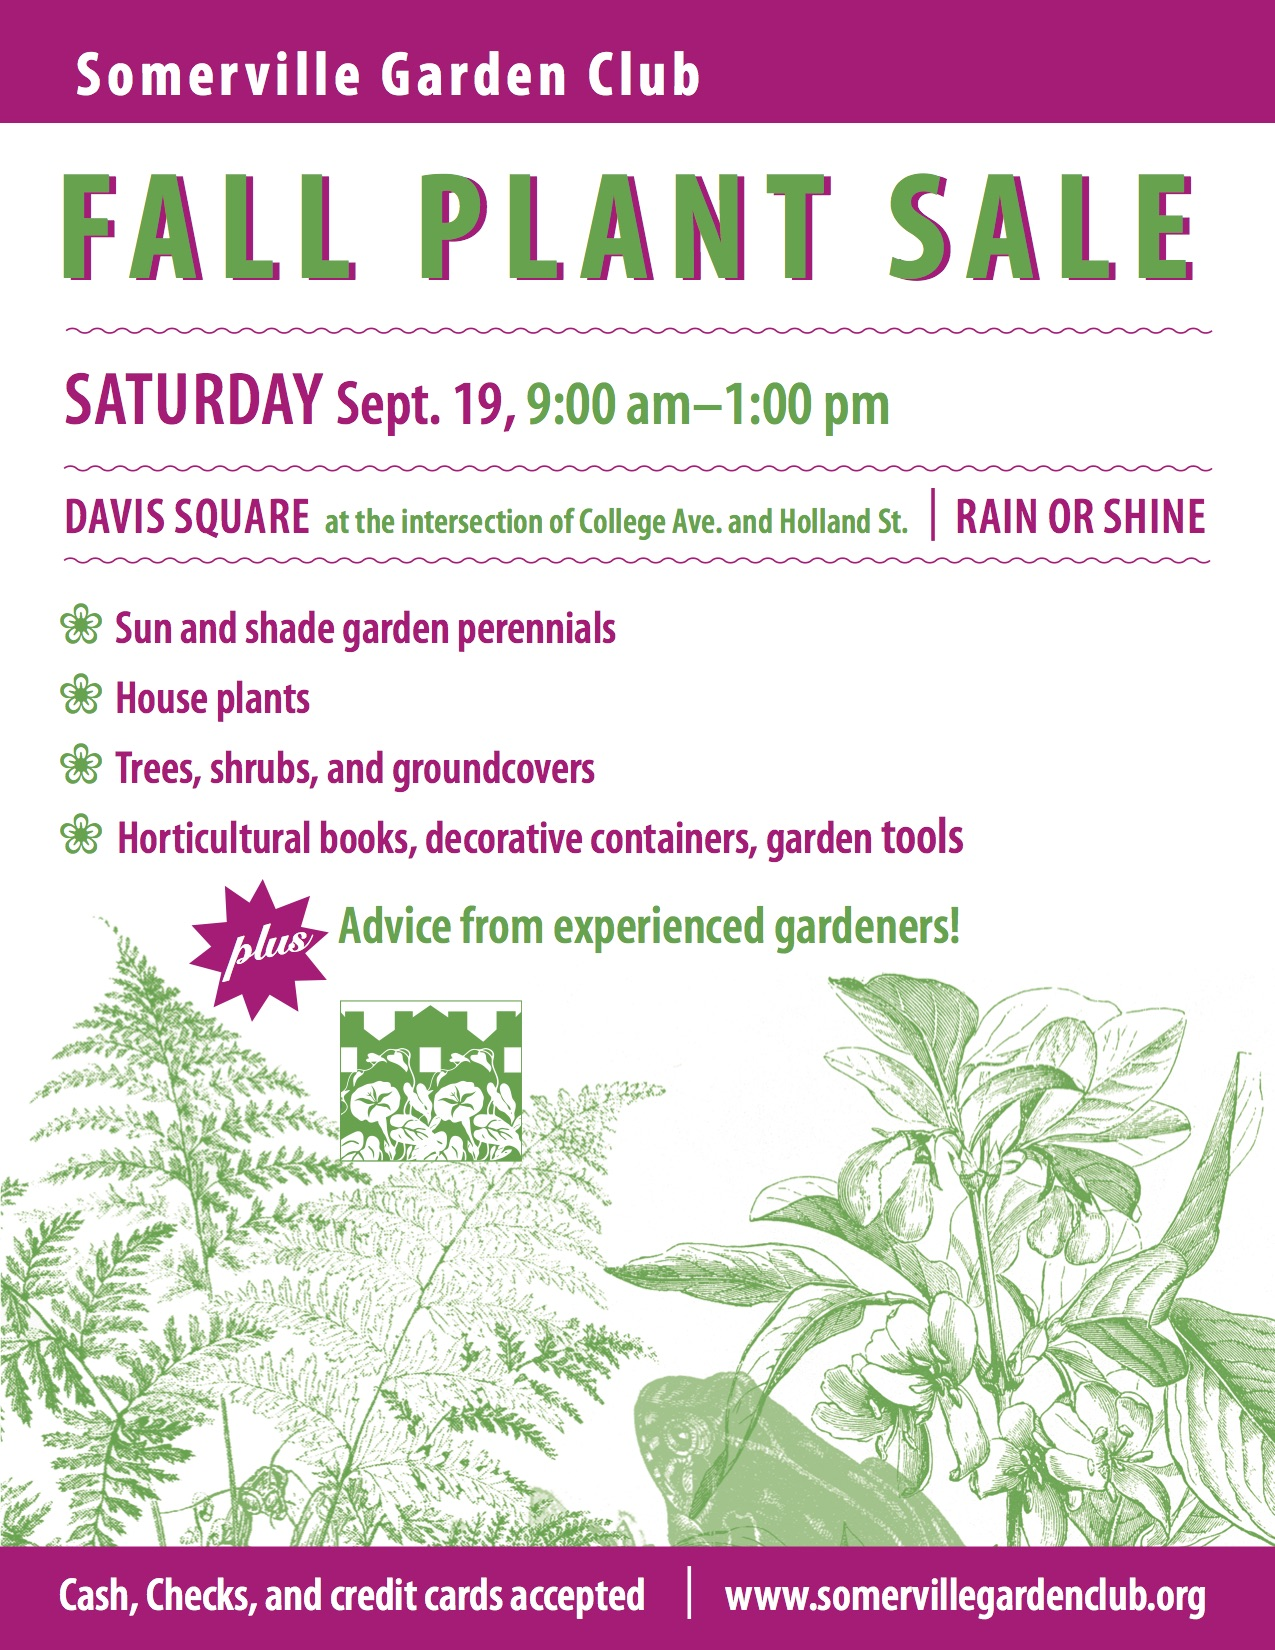 plant sale saturday september 19 2015 9am to 1pm